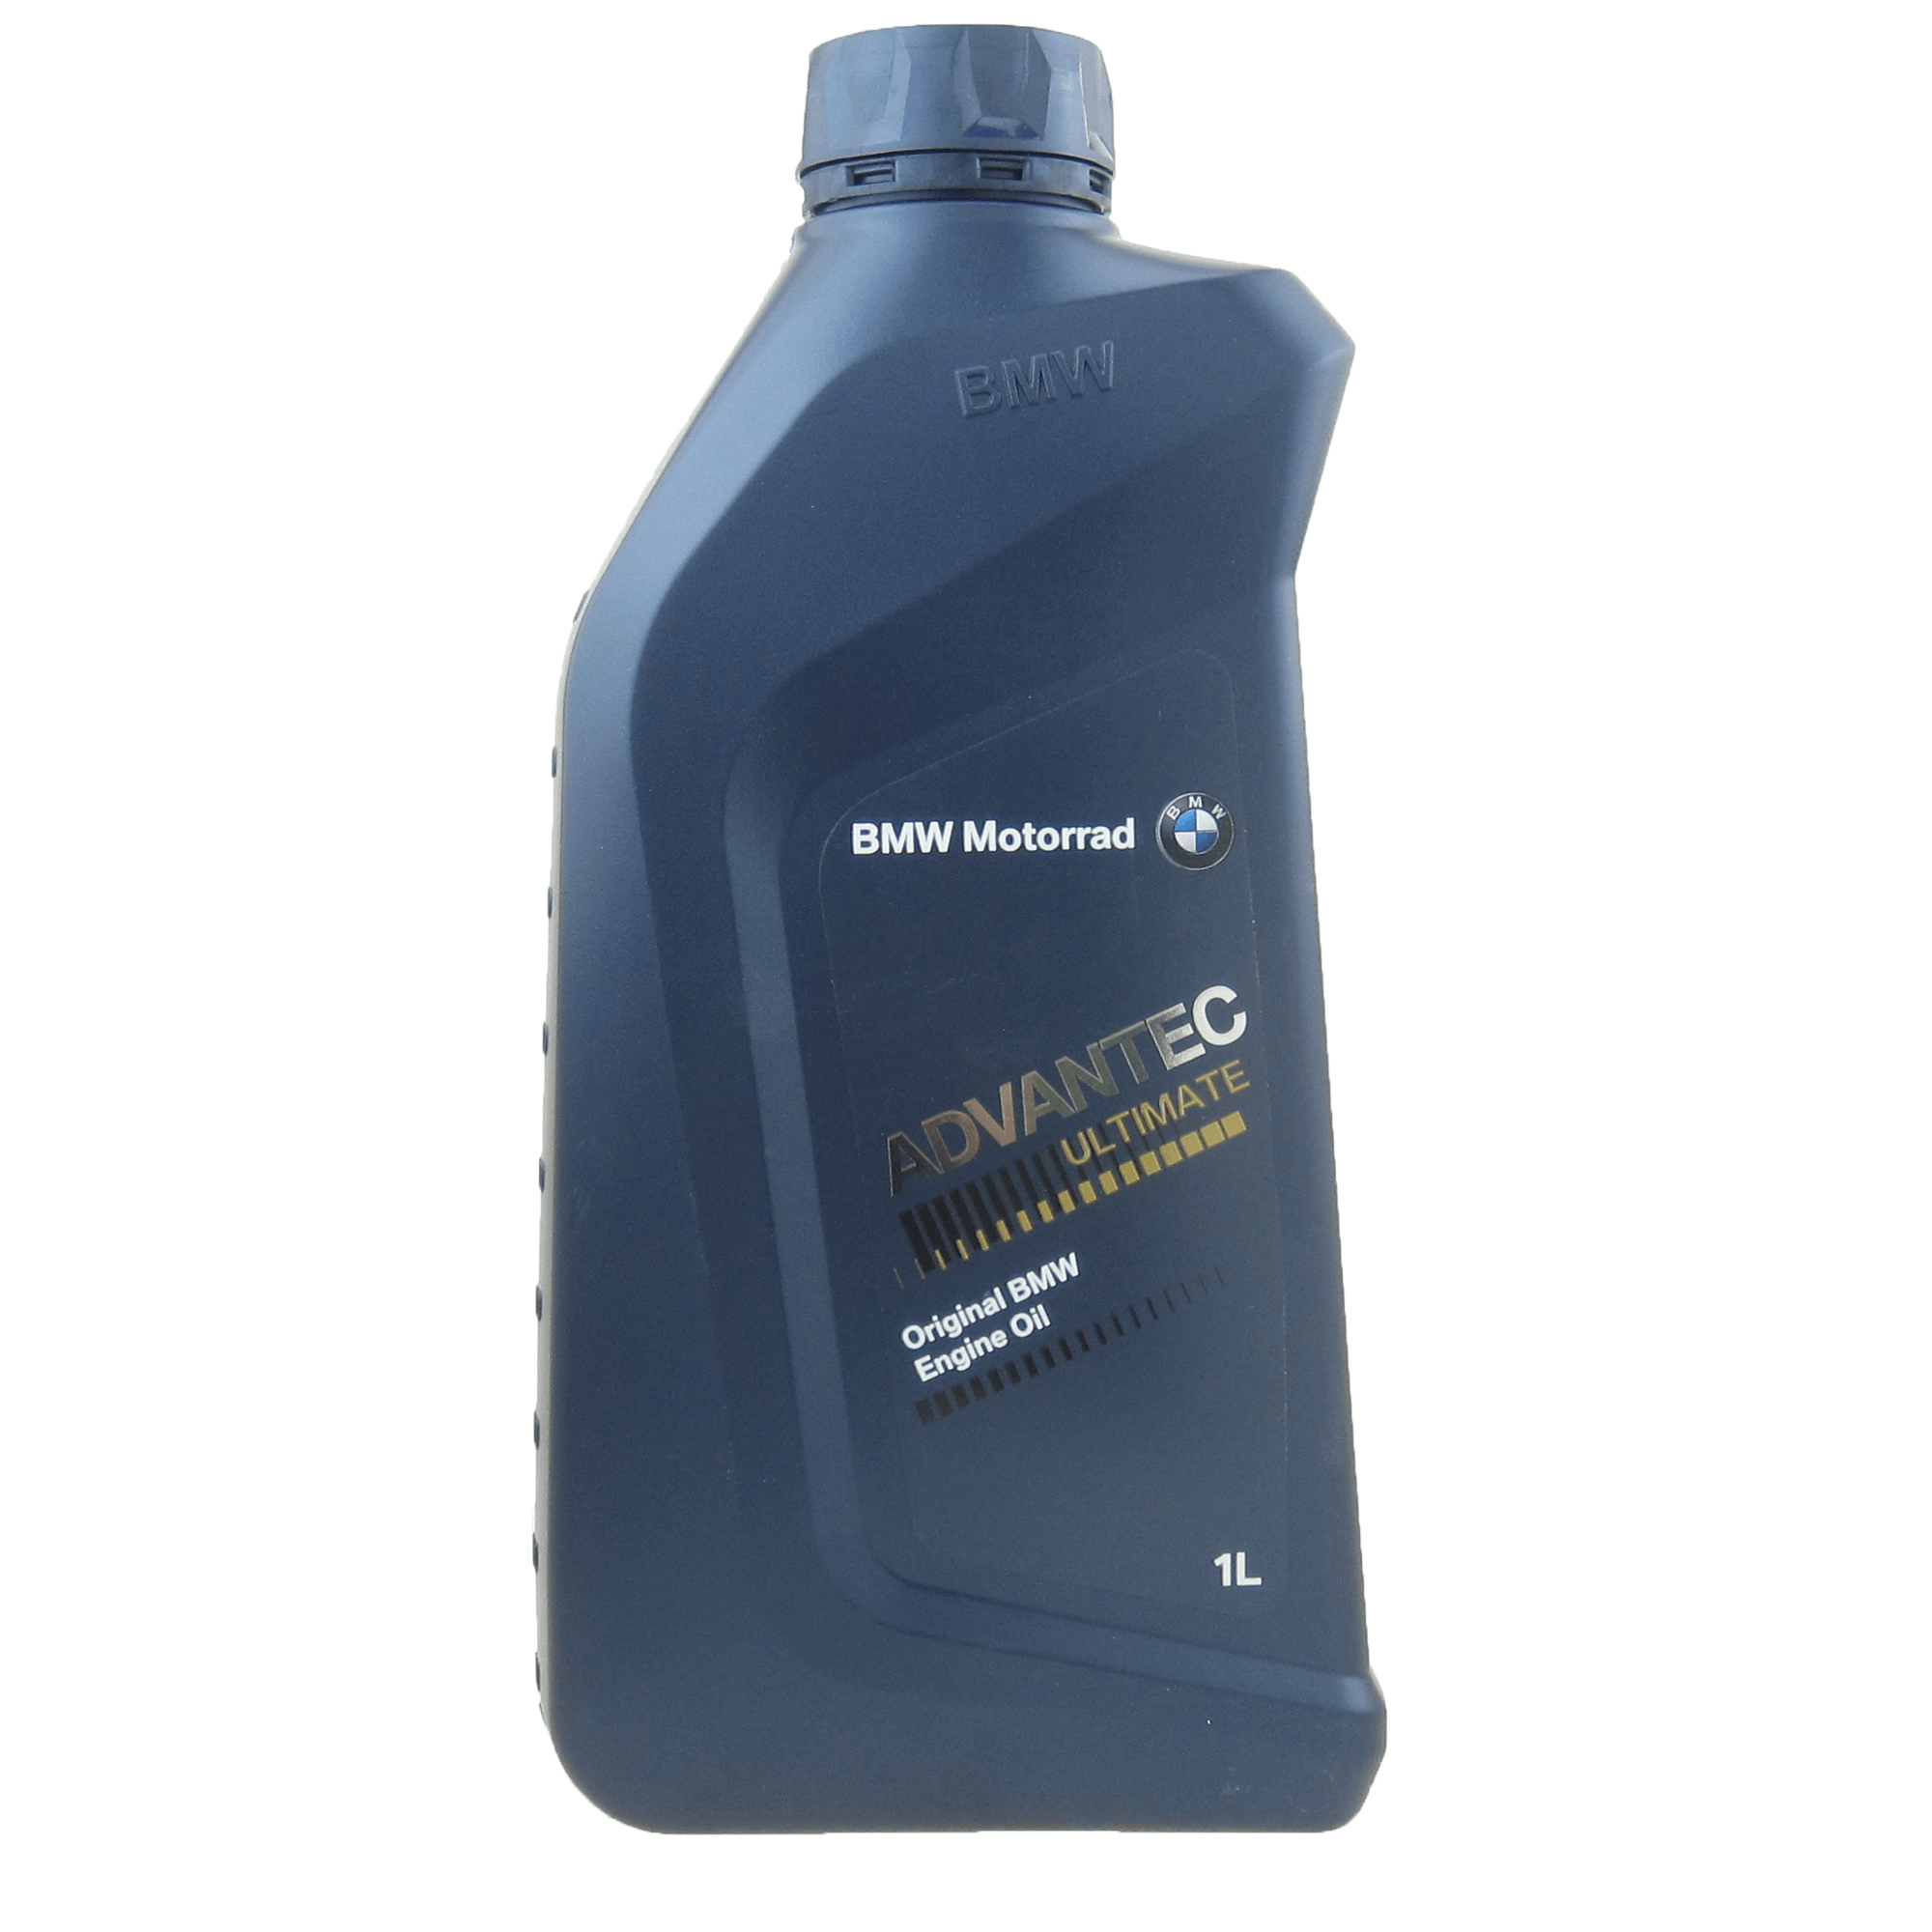 Buy Bmw Advantec Ultimate 5w 40 Motorcycle Engine Oil 1 L At Ato24